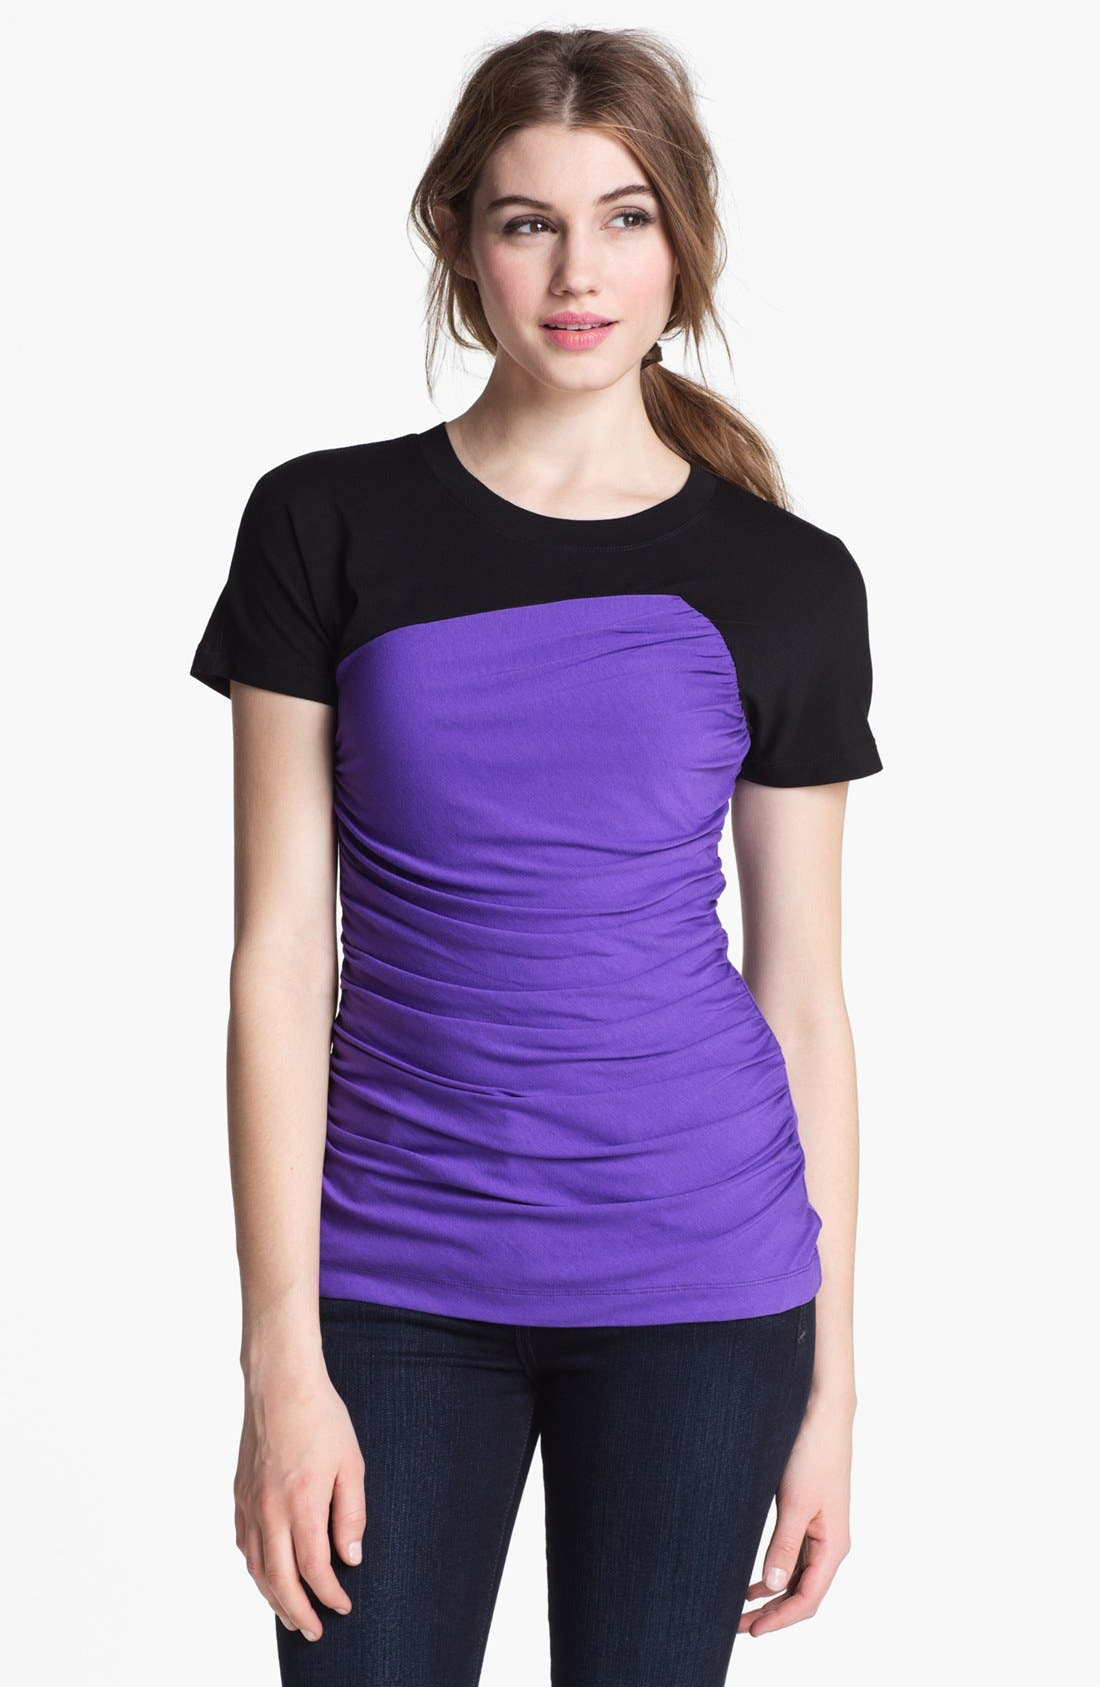 Alternate Image 1 Selected - Vince Camuto Colorblock Ruched Tee (Regular & Petite)